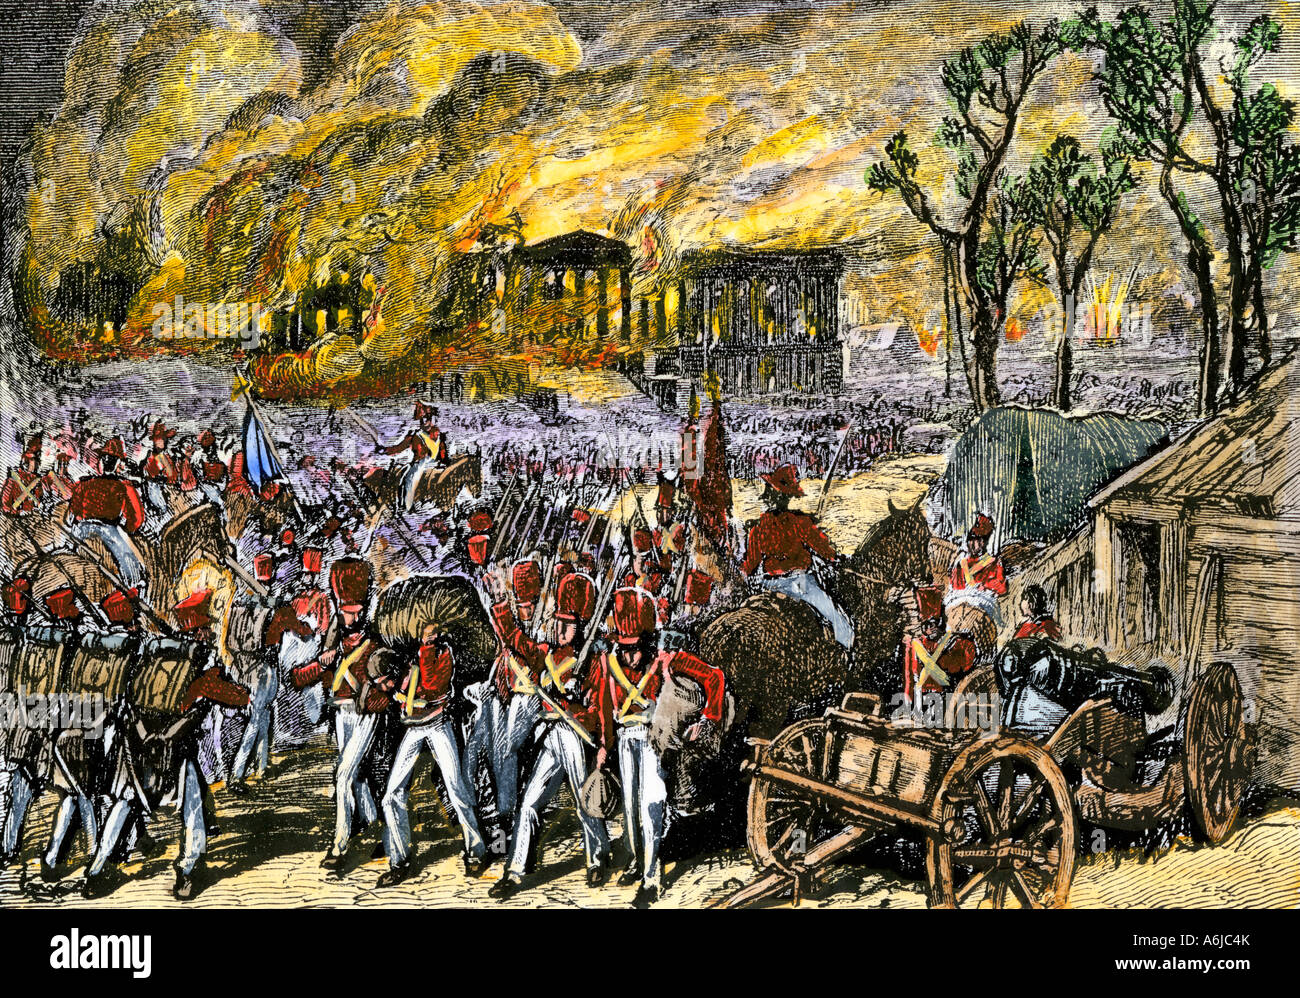 Capture and burning of Washington DC by the British in 1814 during the War  of 1812. Hand-colored woodcut